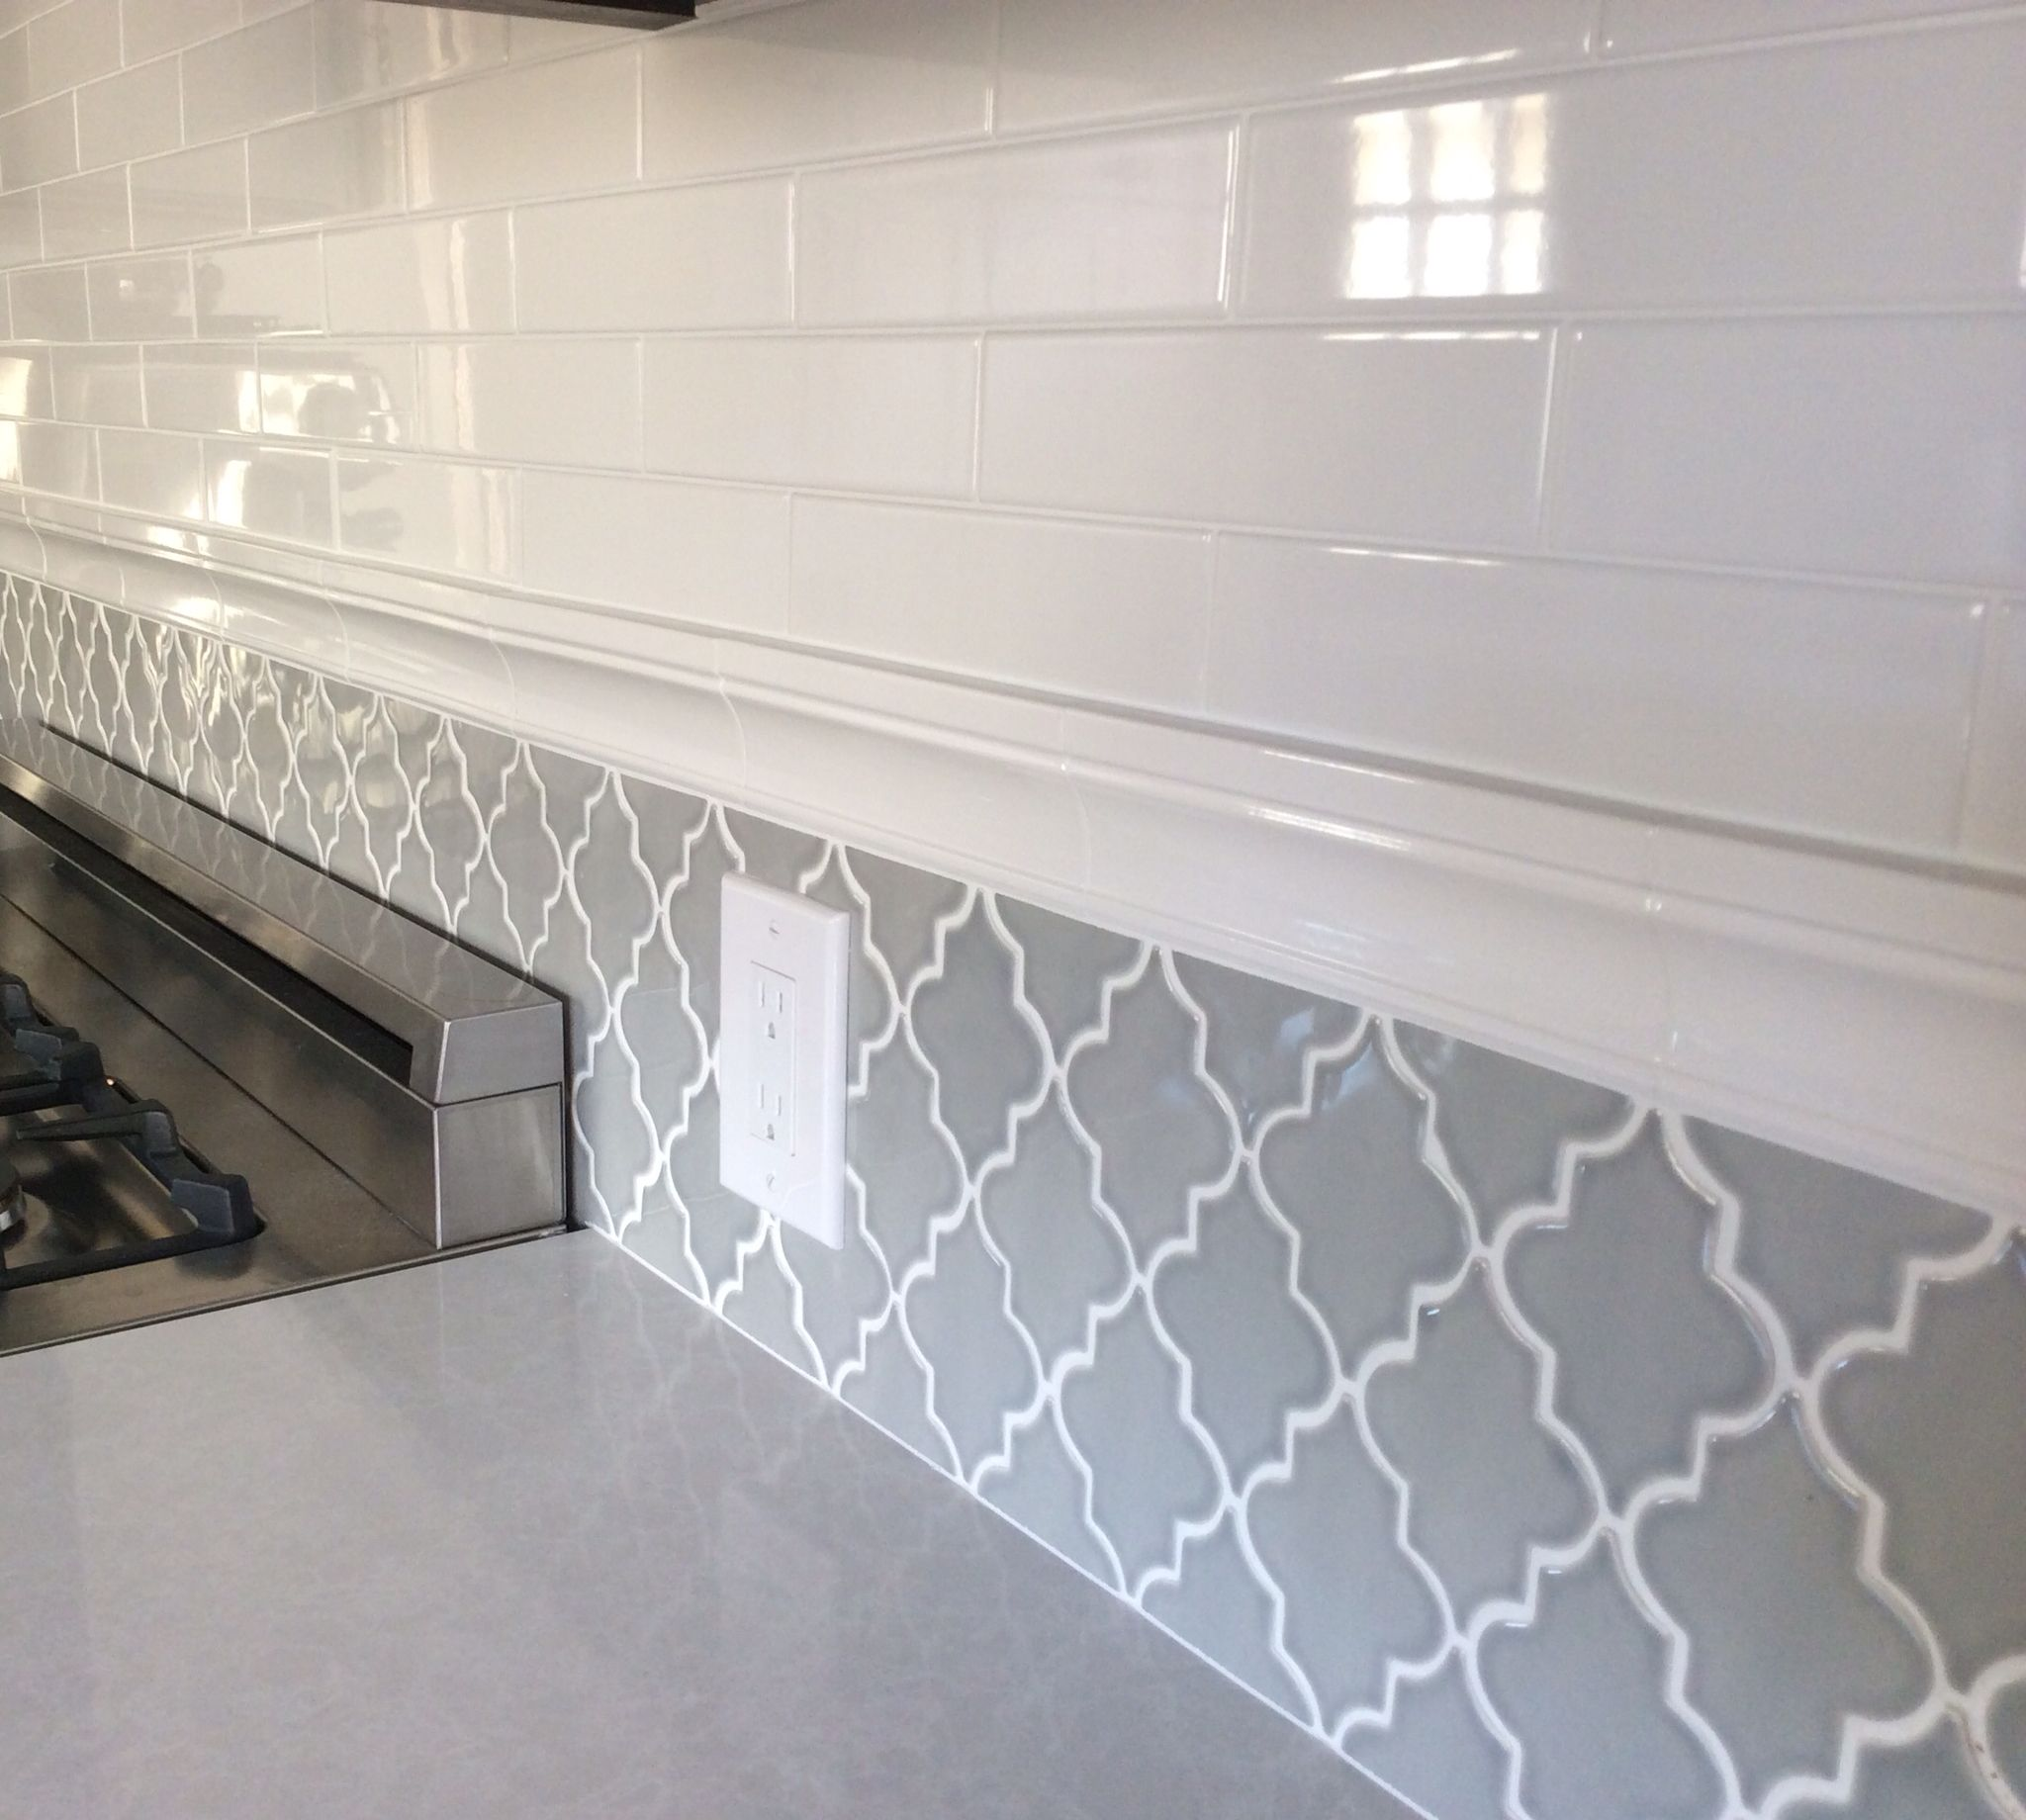 Kitchen Design Subway Tile Backsplash Backsplash In My New Kitchen Subway Tiles And Arabesque